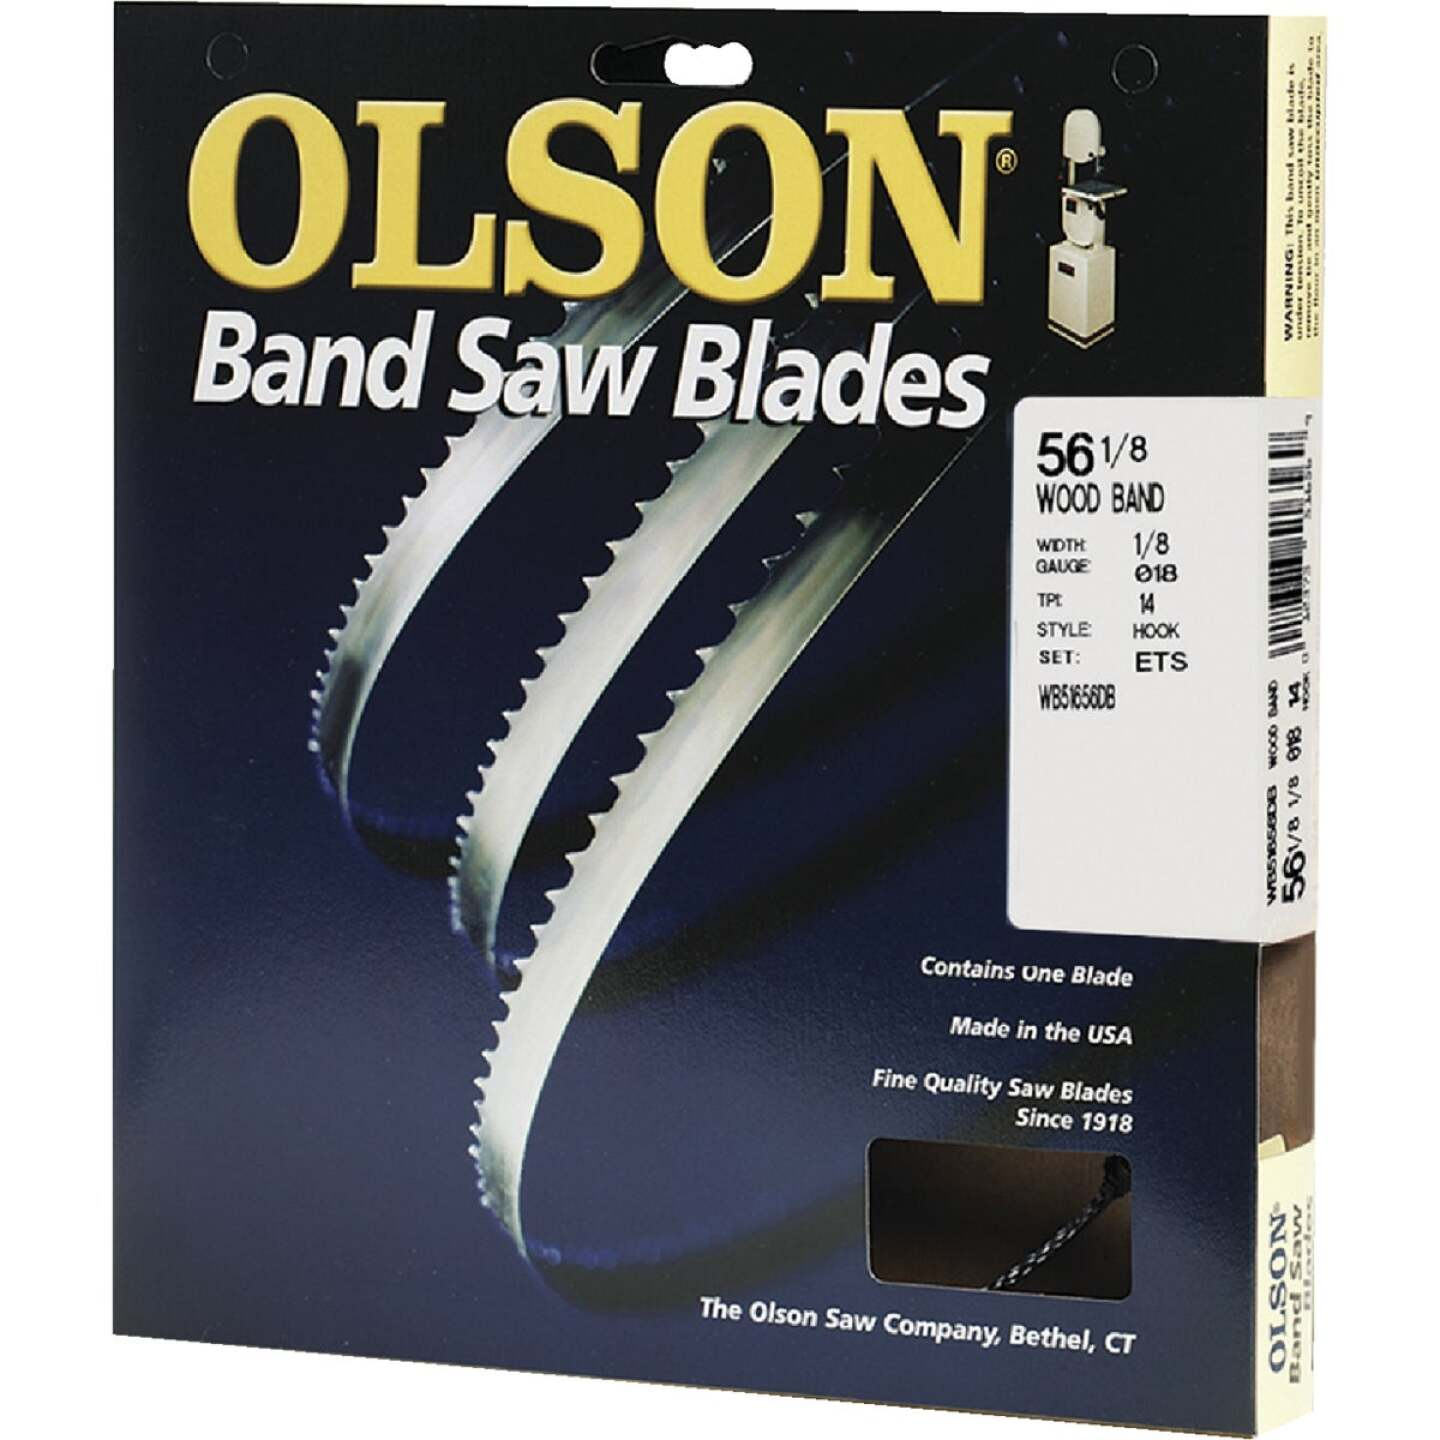 Olson 56-1/8 In. x 1/8 In. 14 TPI Hook Wood Cutting Band Saw Blade Image 1